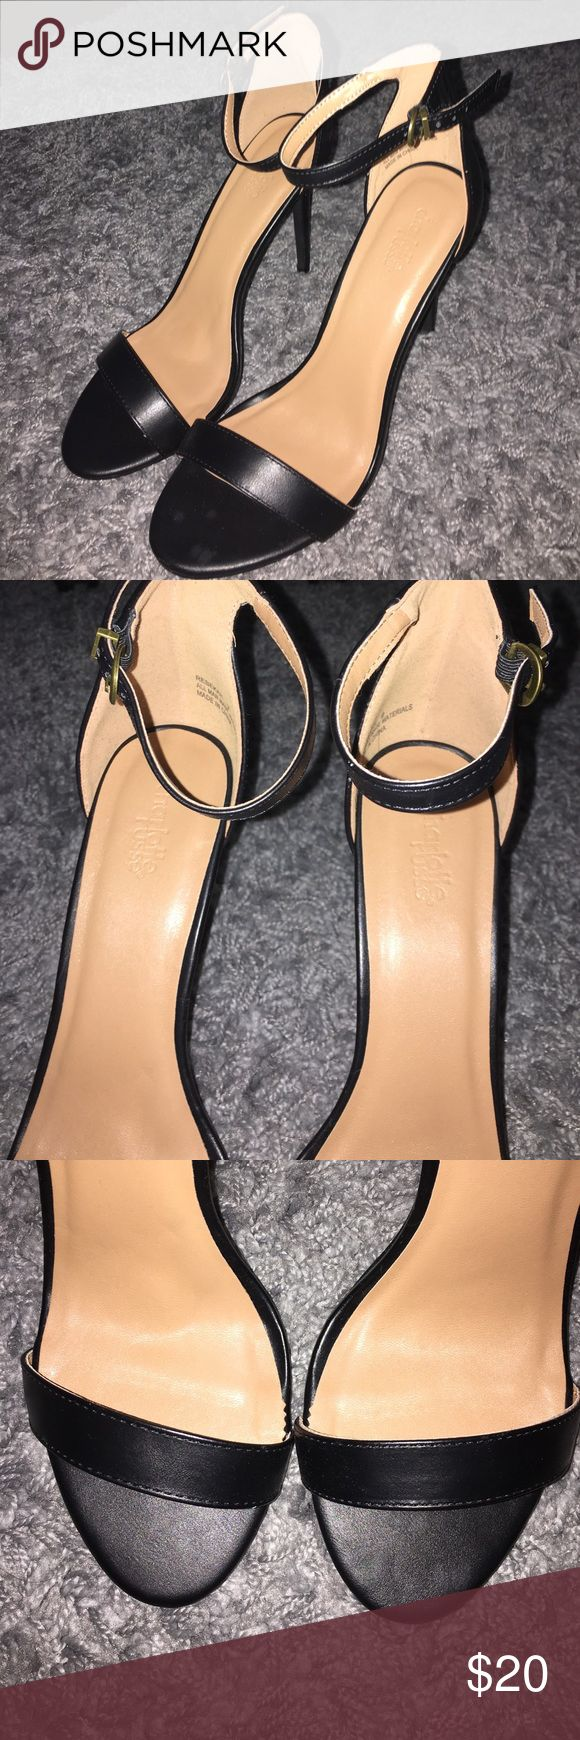 Brand New Charlotte Russe Heels!! Never worn!! Super cute for summer!! Has ankle strap and toe strap! Black outside with tan inside!! Charlotte Russe Shoes Heels